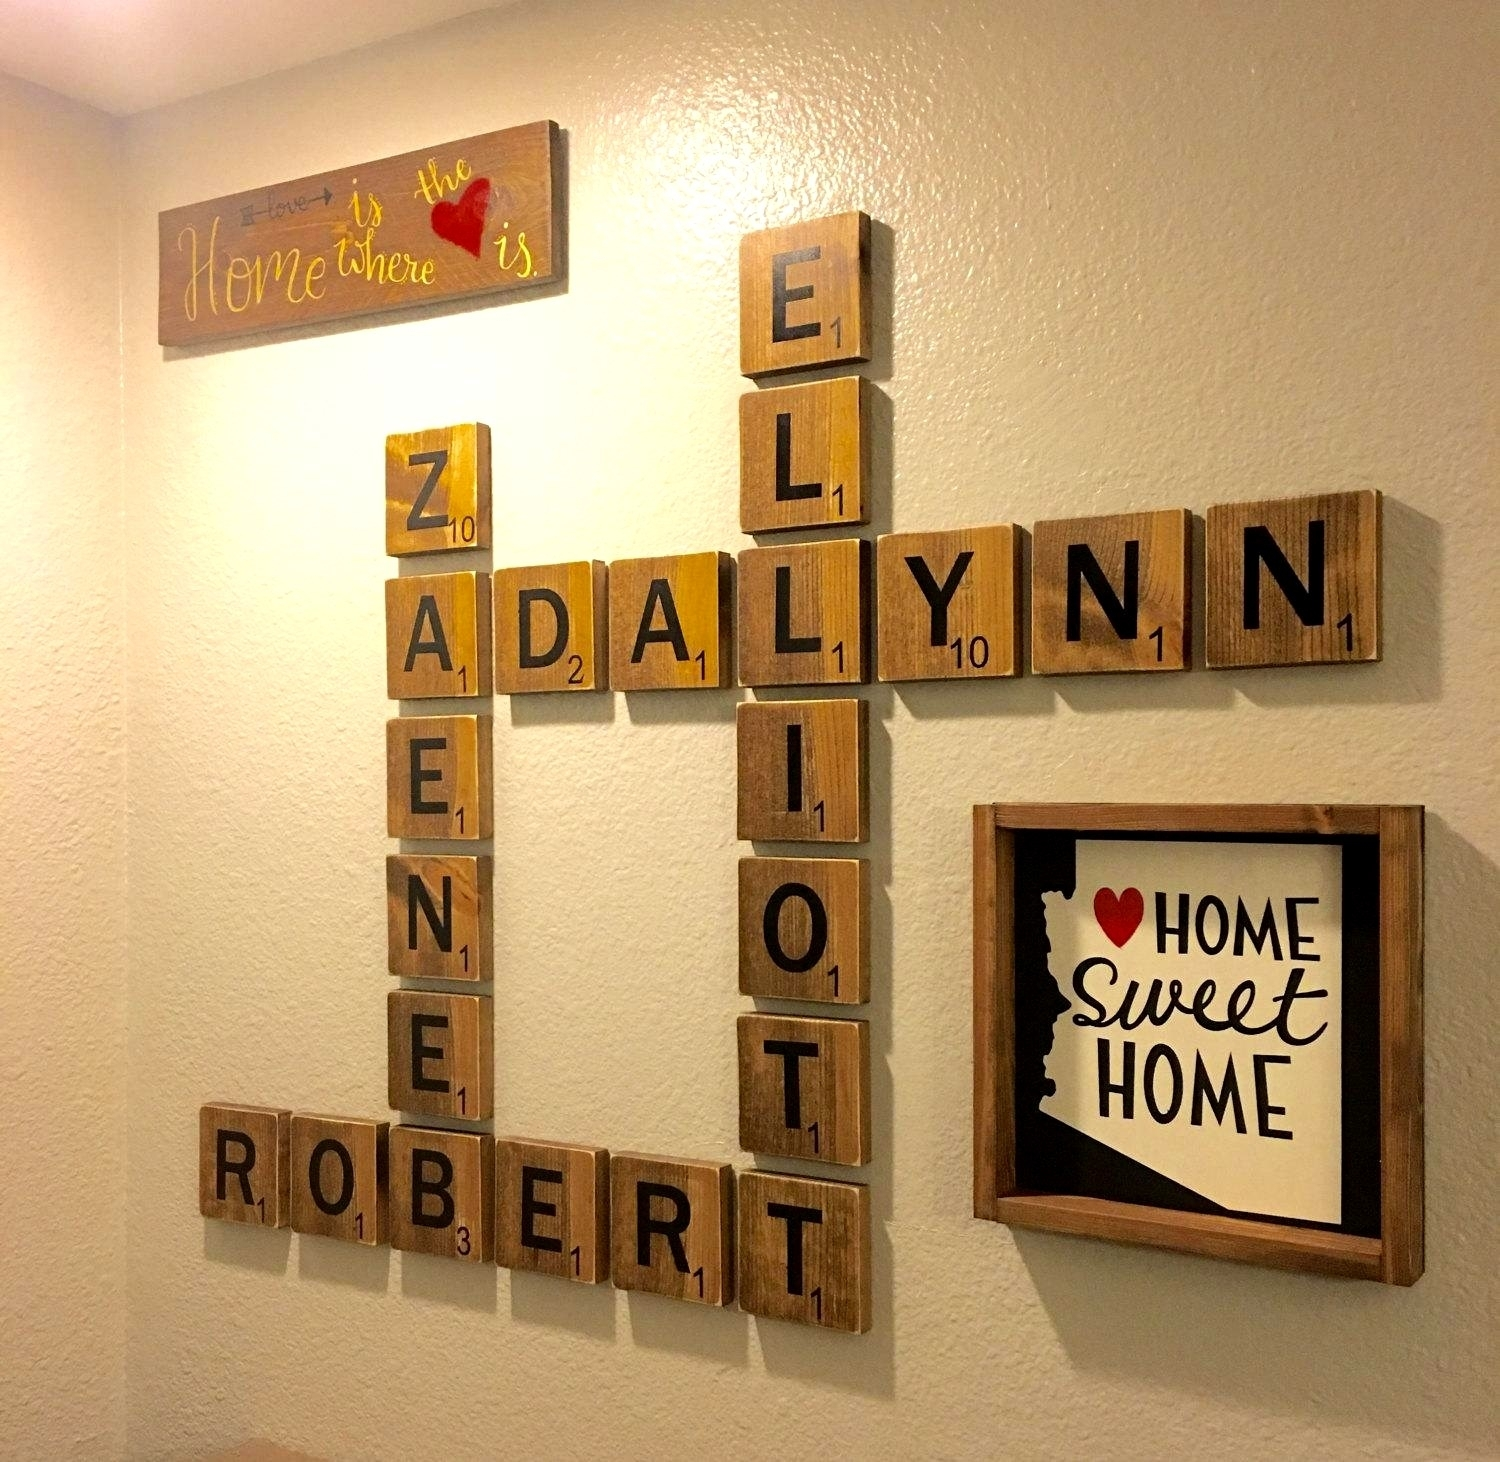 25 Layout Scrabble Tiles Wall Art For Most Up To Date Scrabble Wall Art (View 1 of 20)